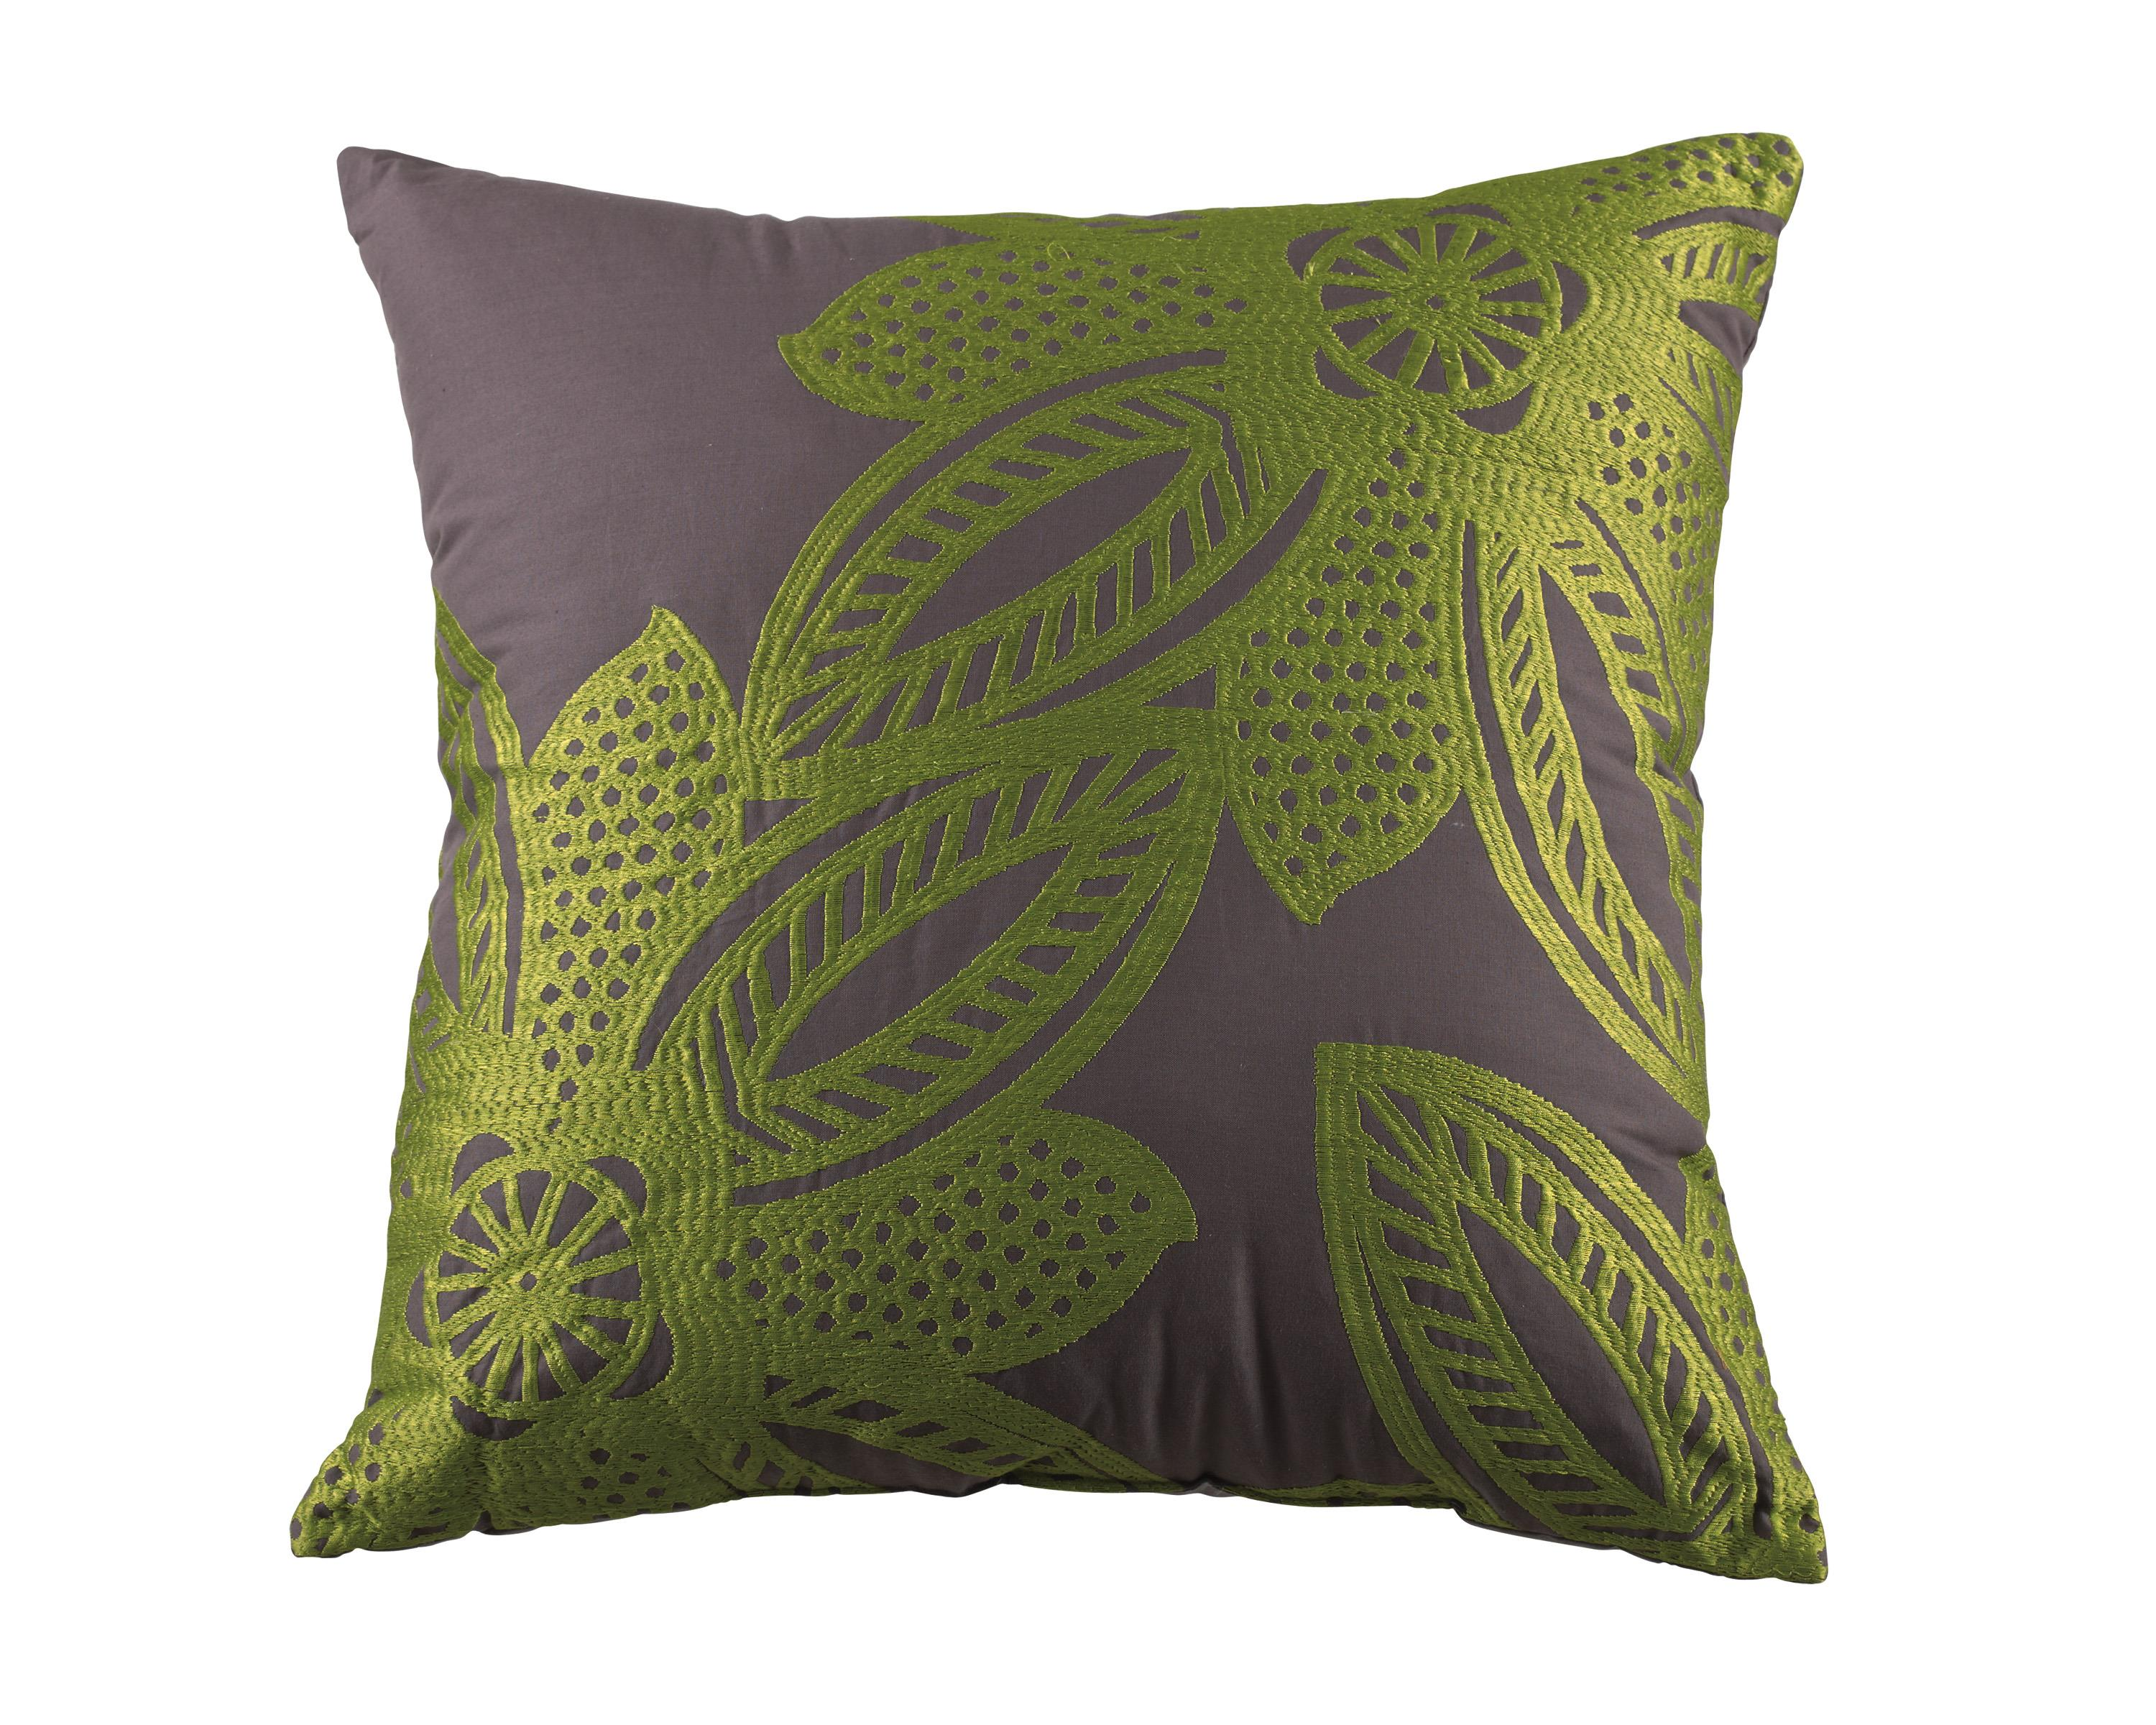 Signature Design by Ashley Pillows Wyler - Lime - Item Number: A1000172P